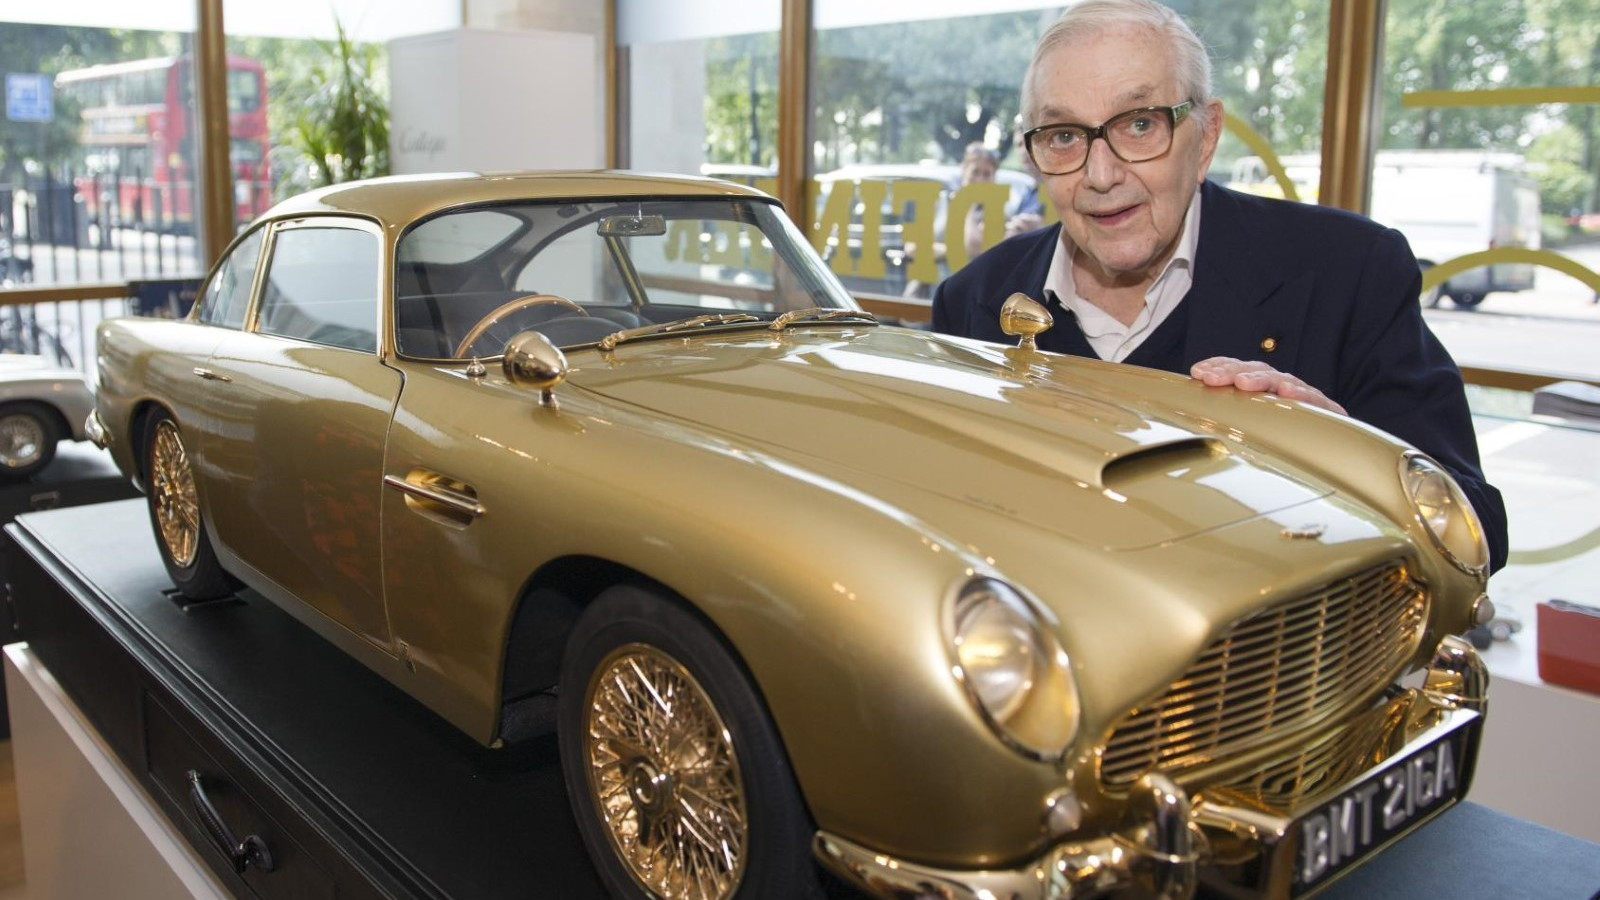 Gold-plated Aston Martin DB5 model, auctioned by Christie's